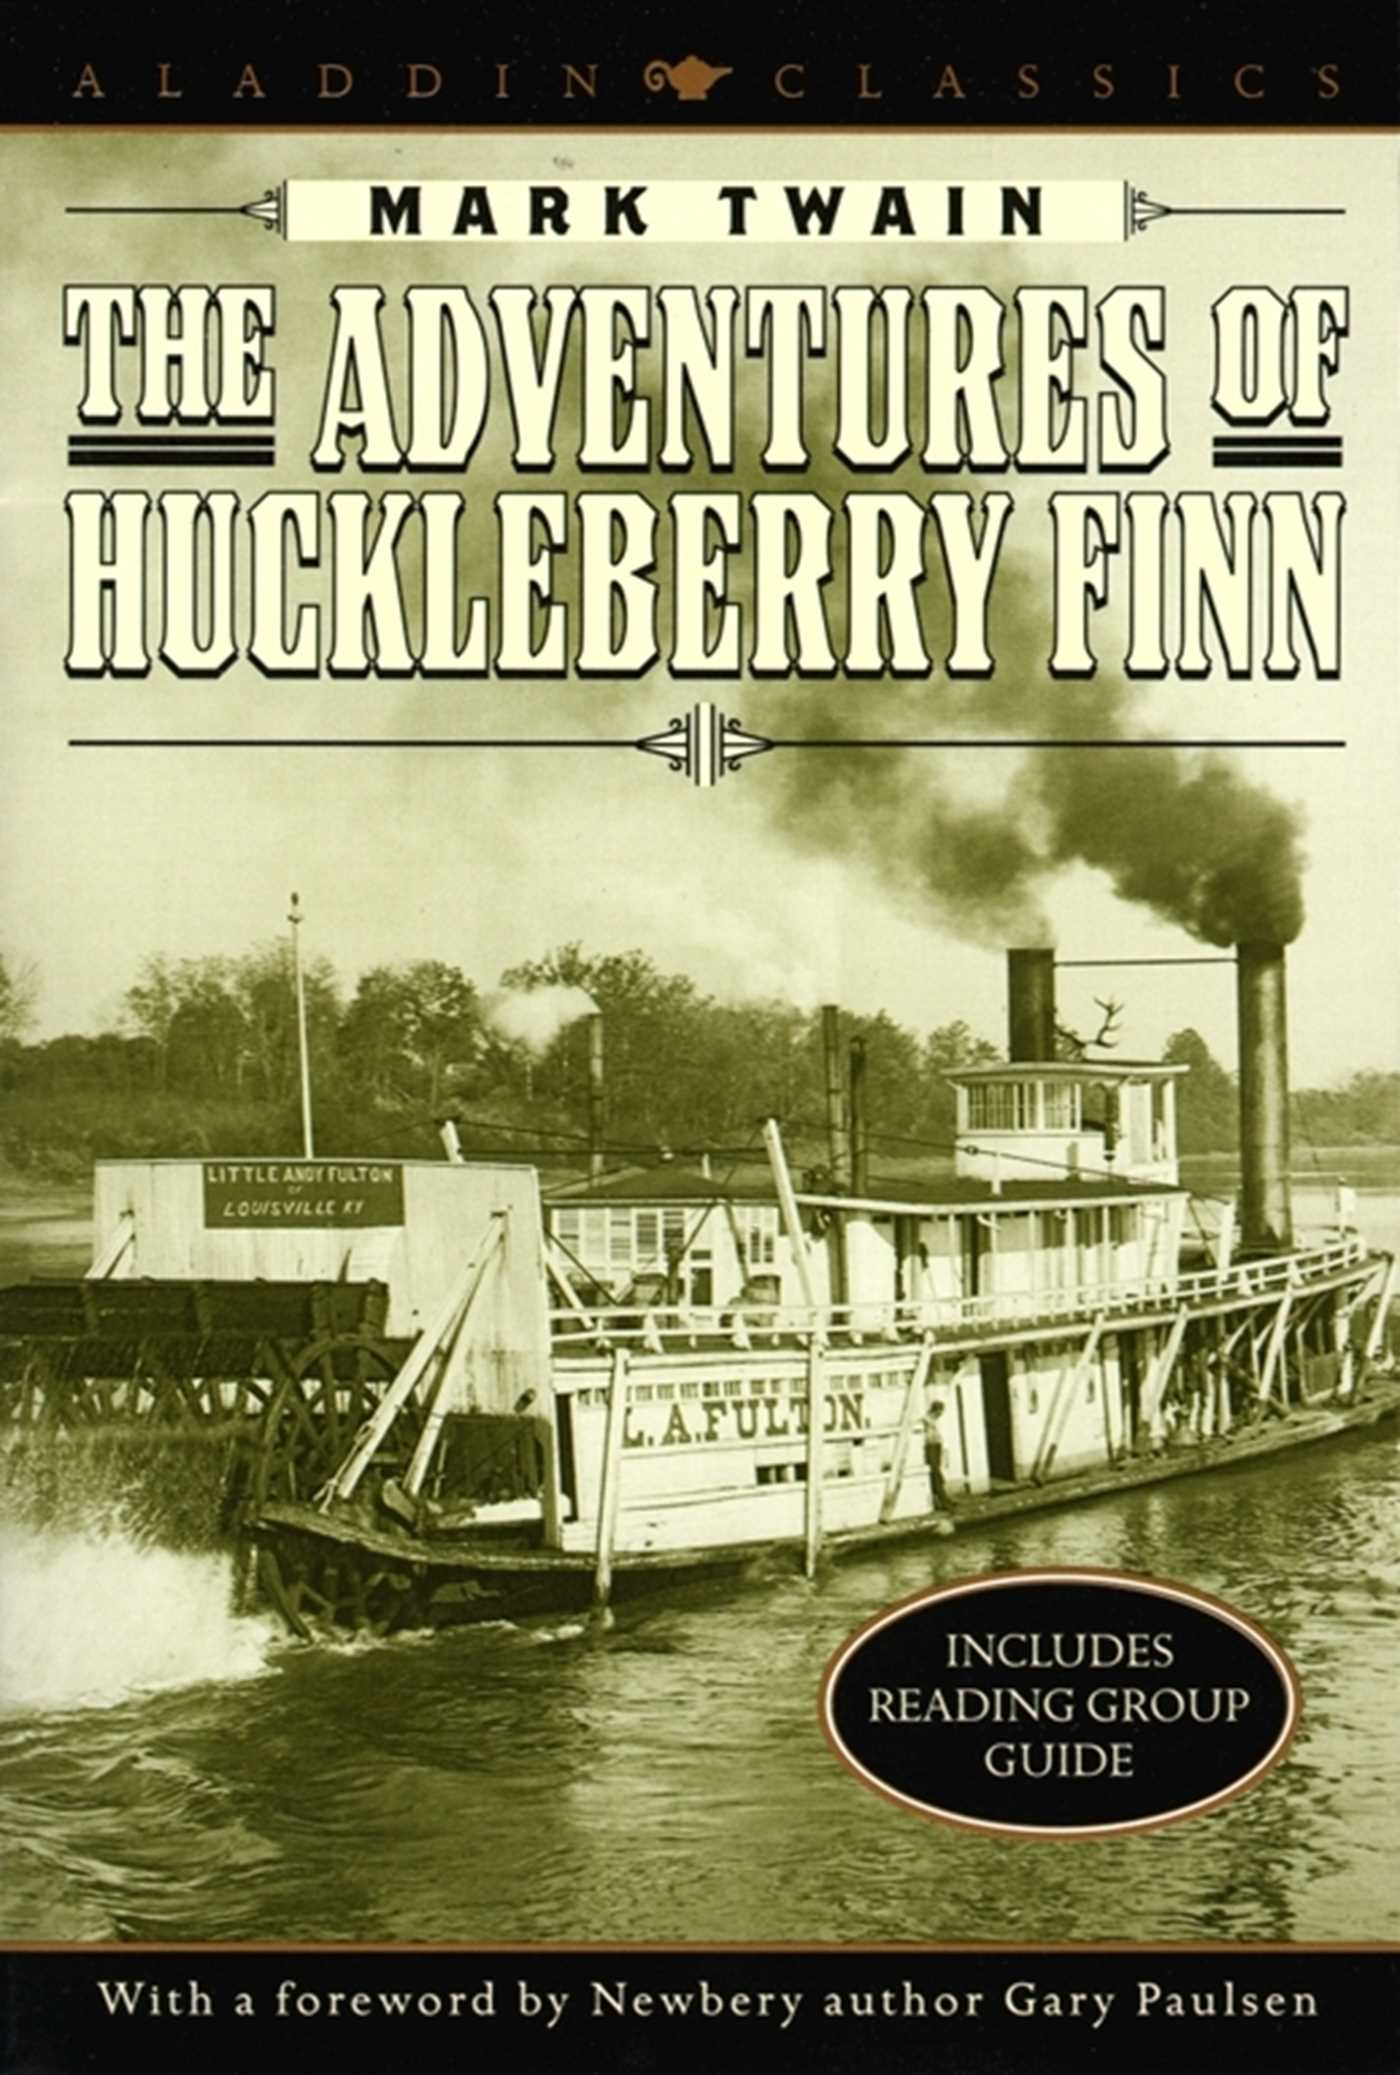 adventures of huckleberry finn 2 essay Two sites contain a wealth of these essays: the edsitement-reviewed mark twain in his times, which contains dozens of contemporary reviews of the adventures of huckleberry finn and huckleberry finn debated, 1884-2001, which contains reviews from twain's contemporaries through the present day.